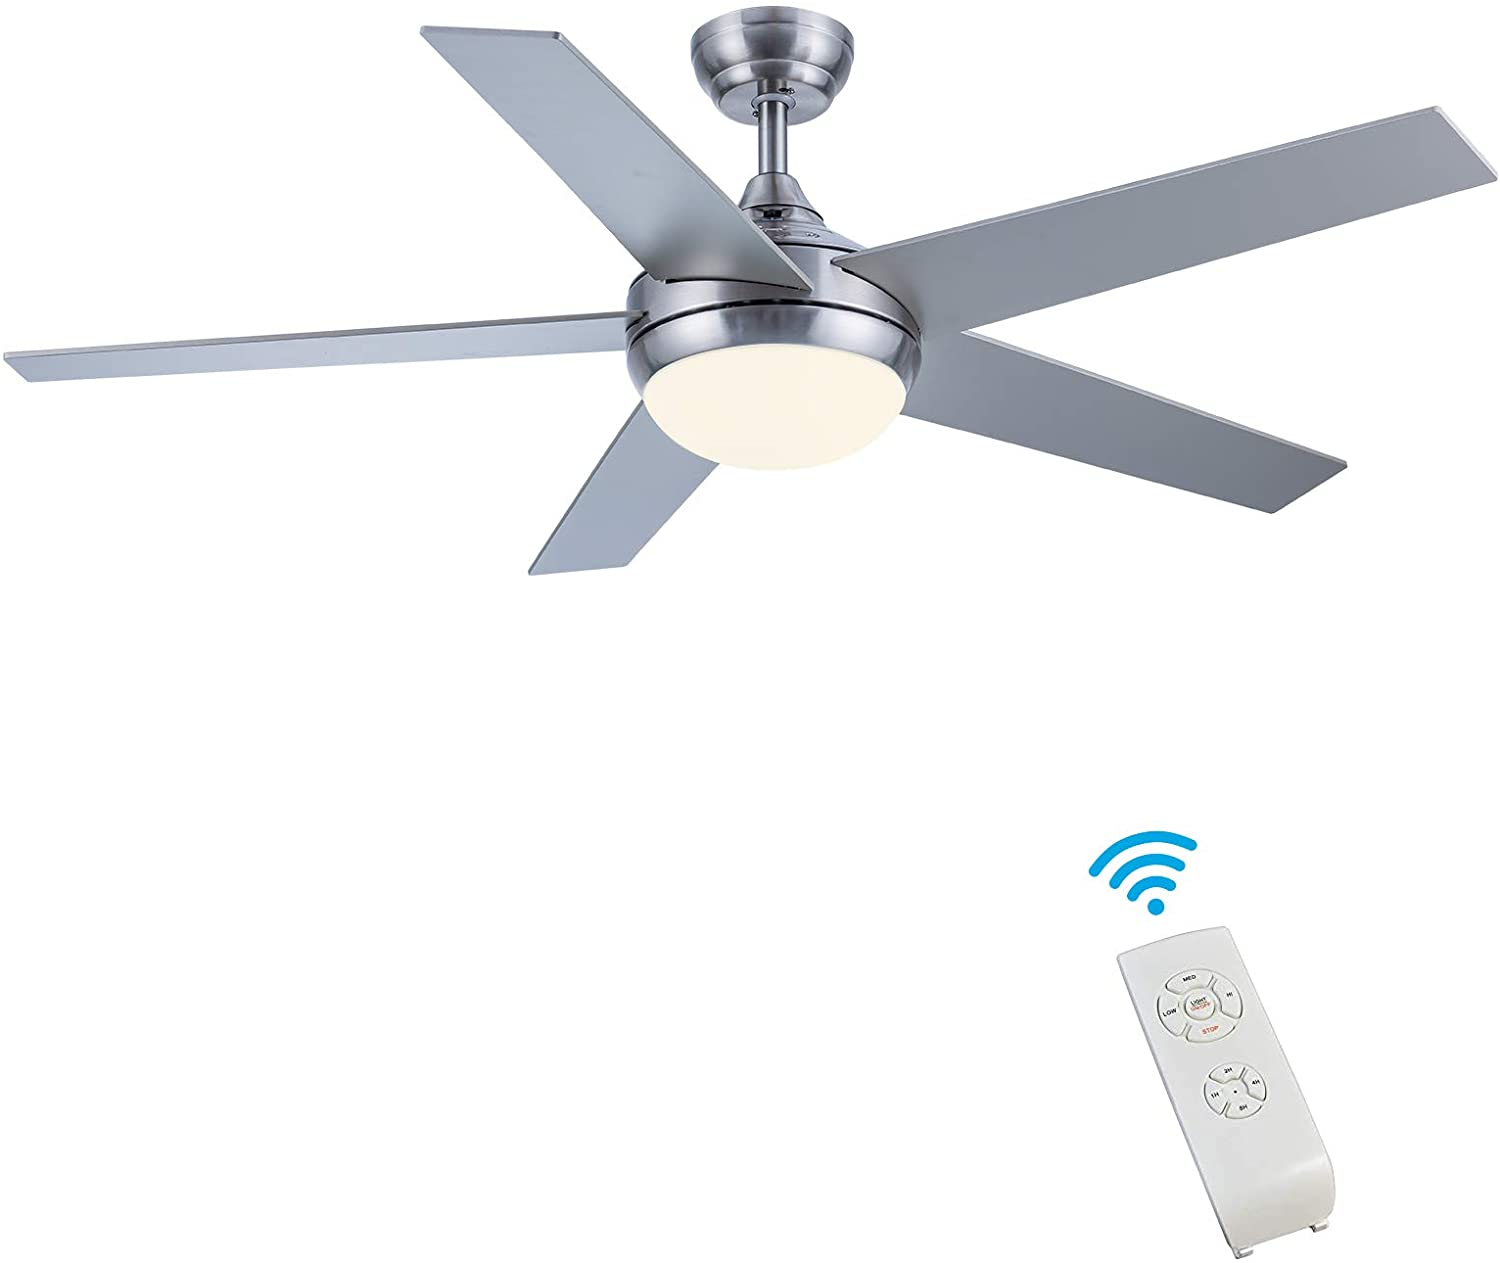 Ceiling Fan with Light, CJOY 52 Inch Modern Ceiling Fan with 5 Reversible Blades, 3000K, Remote Controls, Brushed Nickel, for Indoor